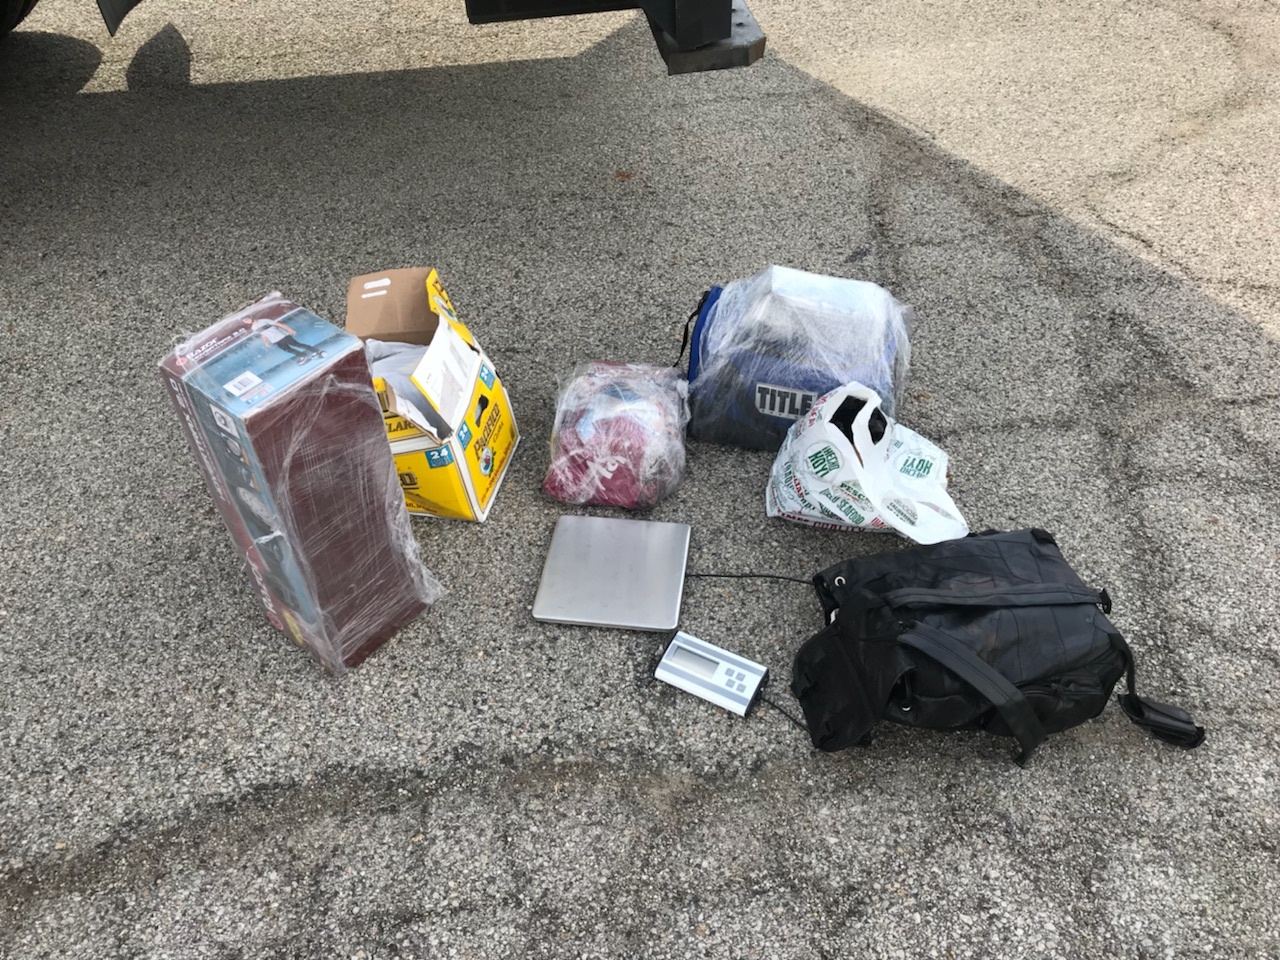 Illinois State Police Seize $1.1 Million Dollars of Suspected Cocaine on I-70